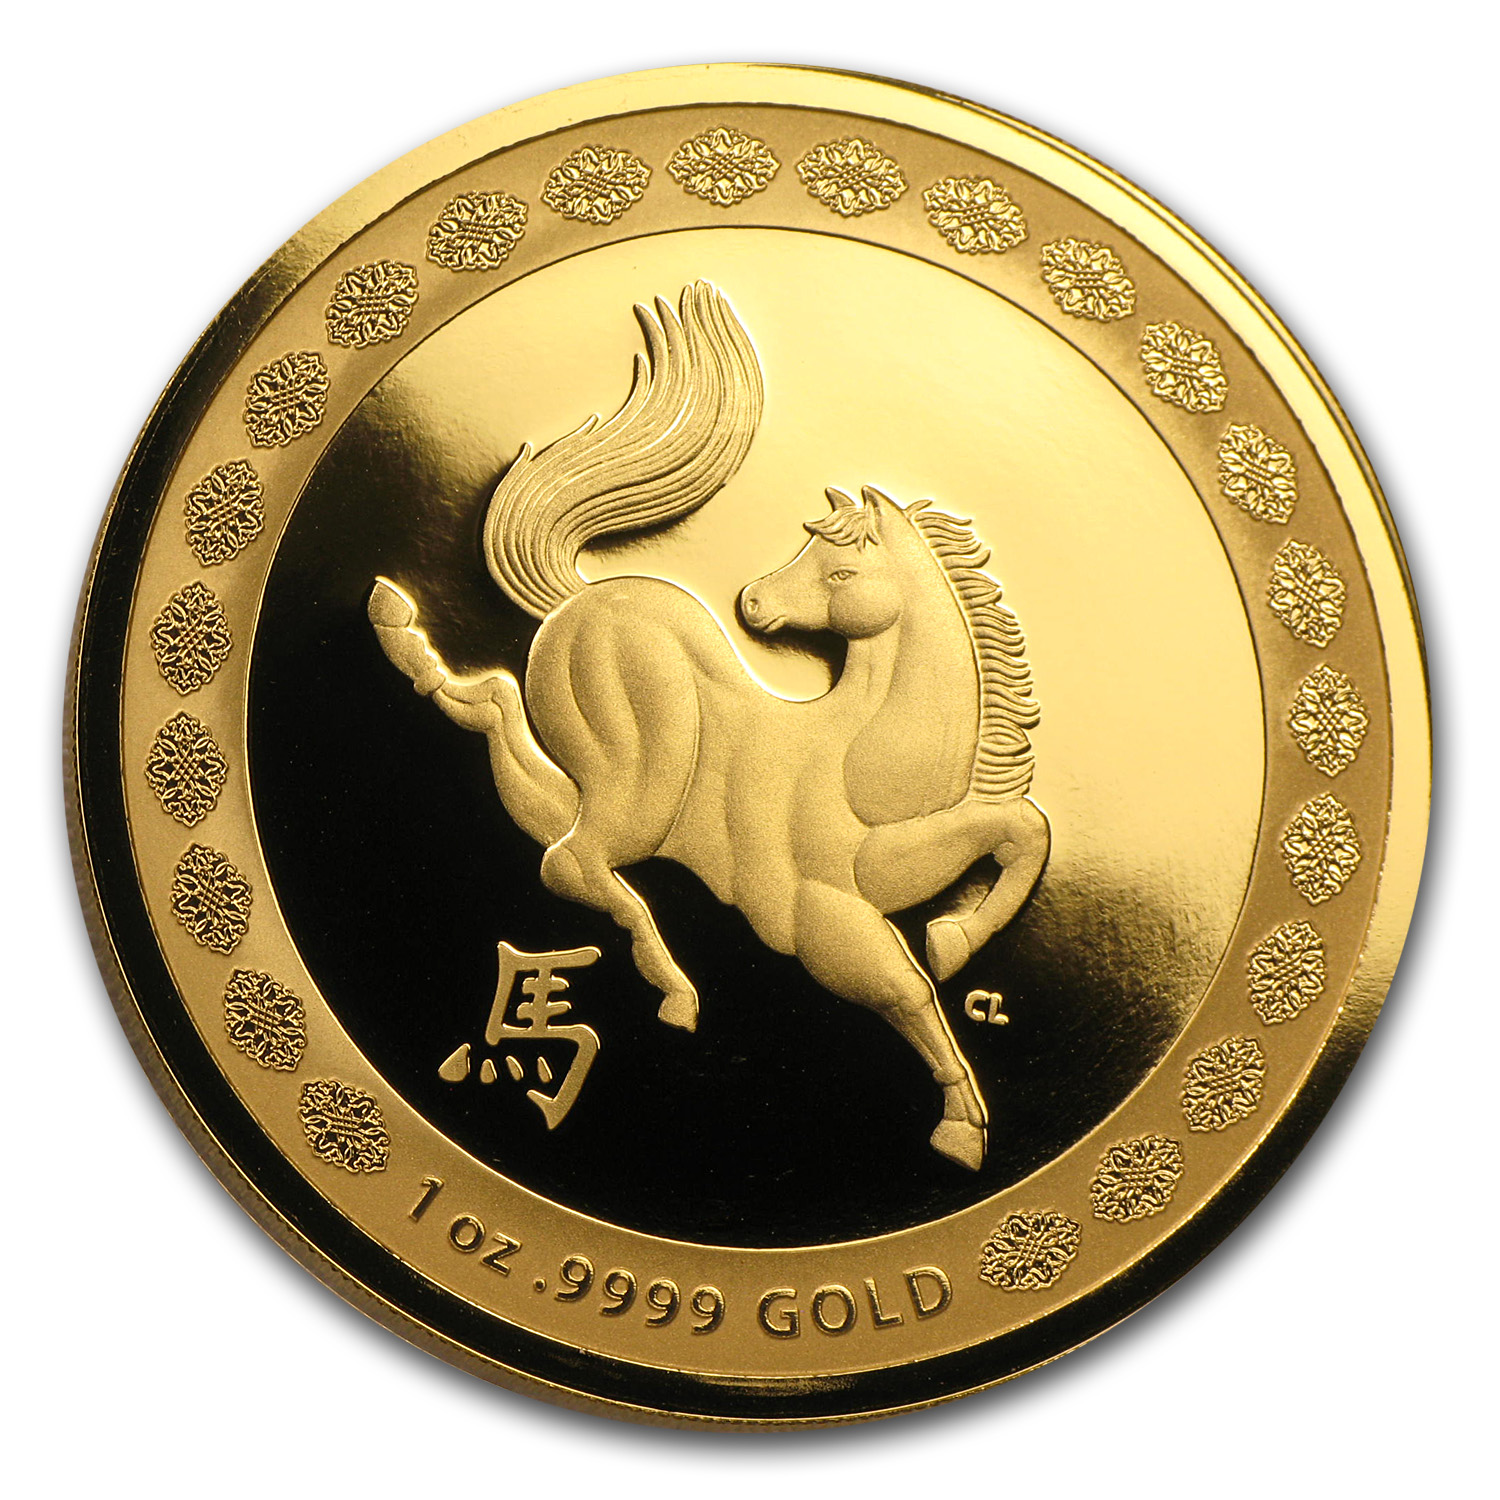 2014 Australia 1 oz Proof Gold Year of the Horse